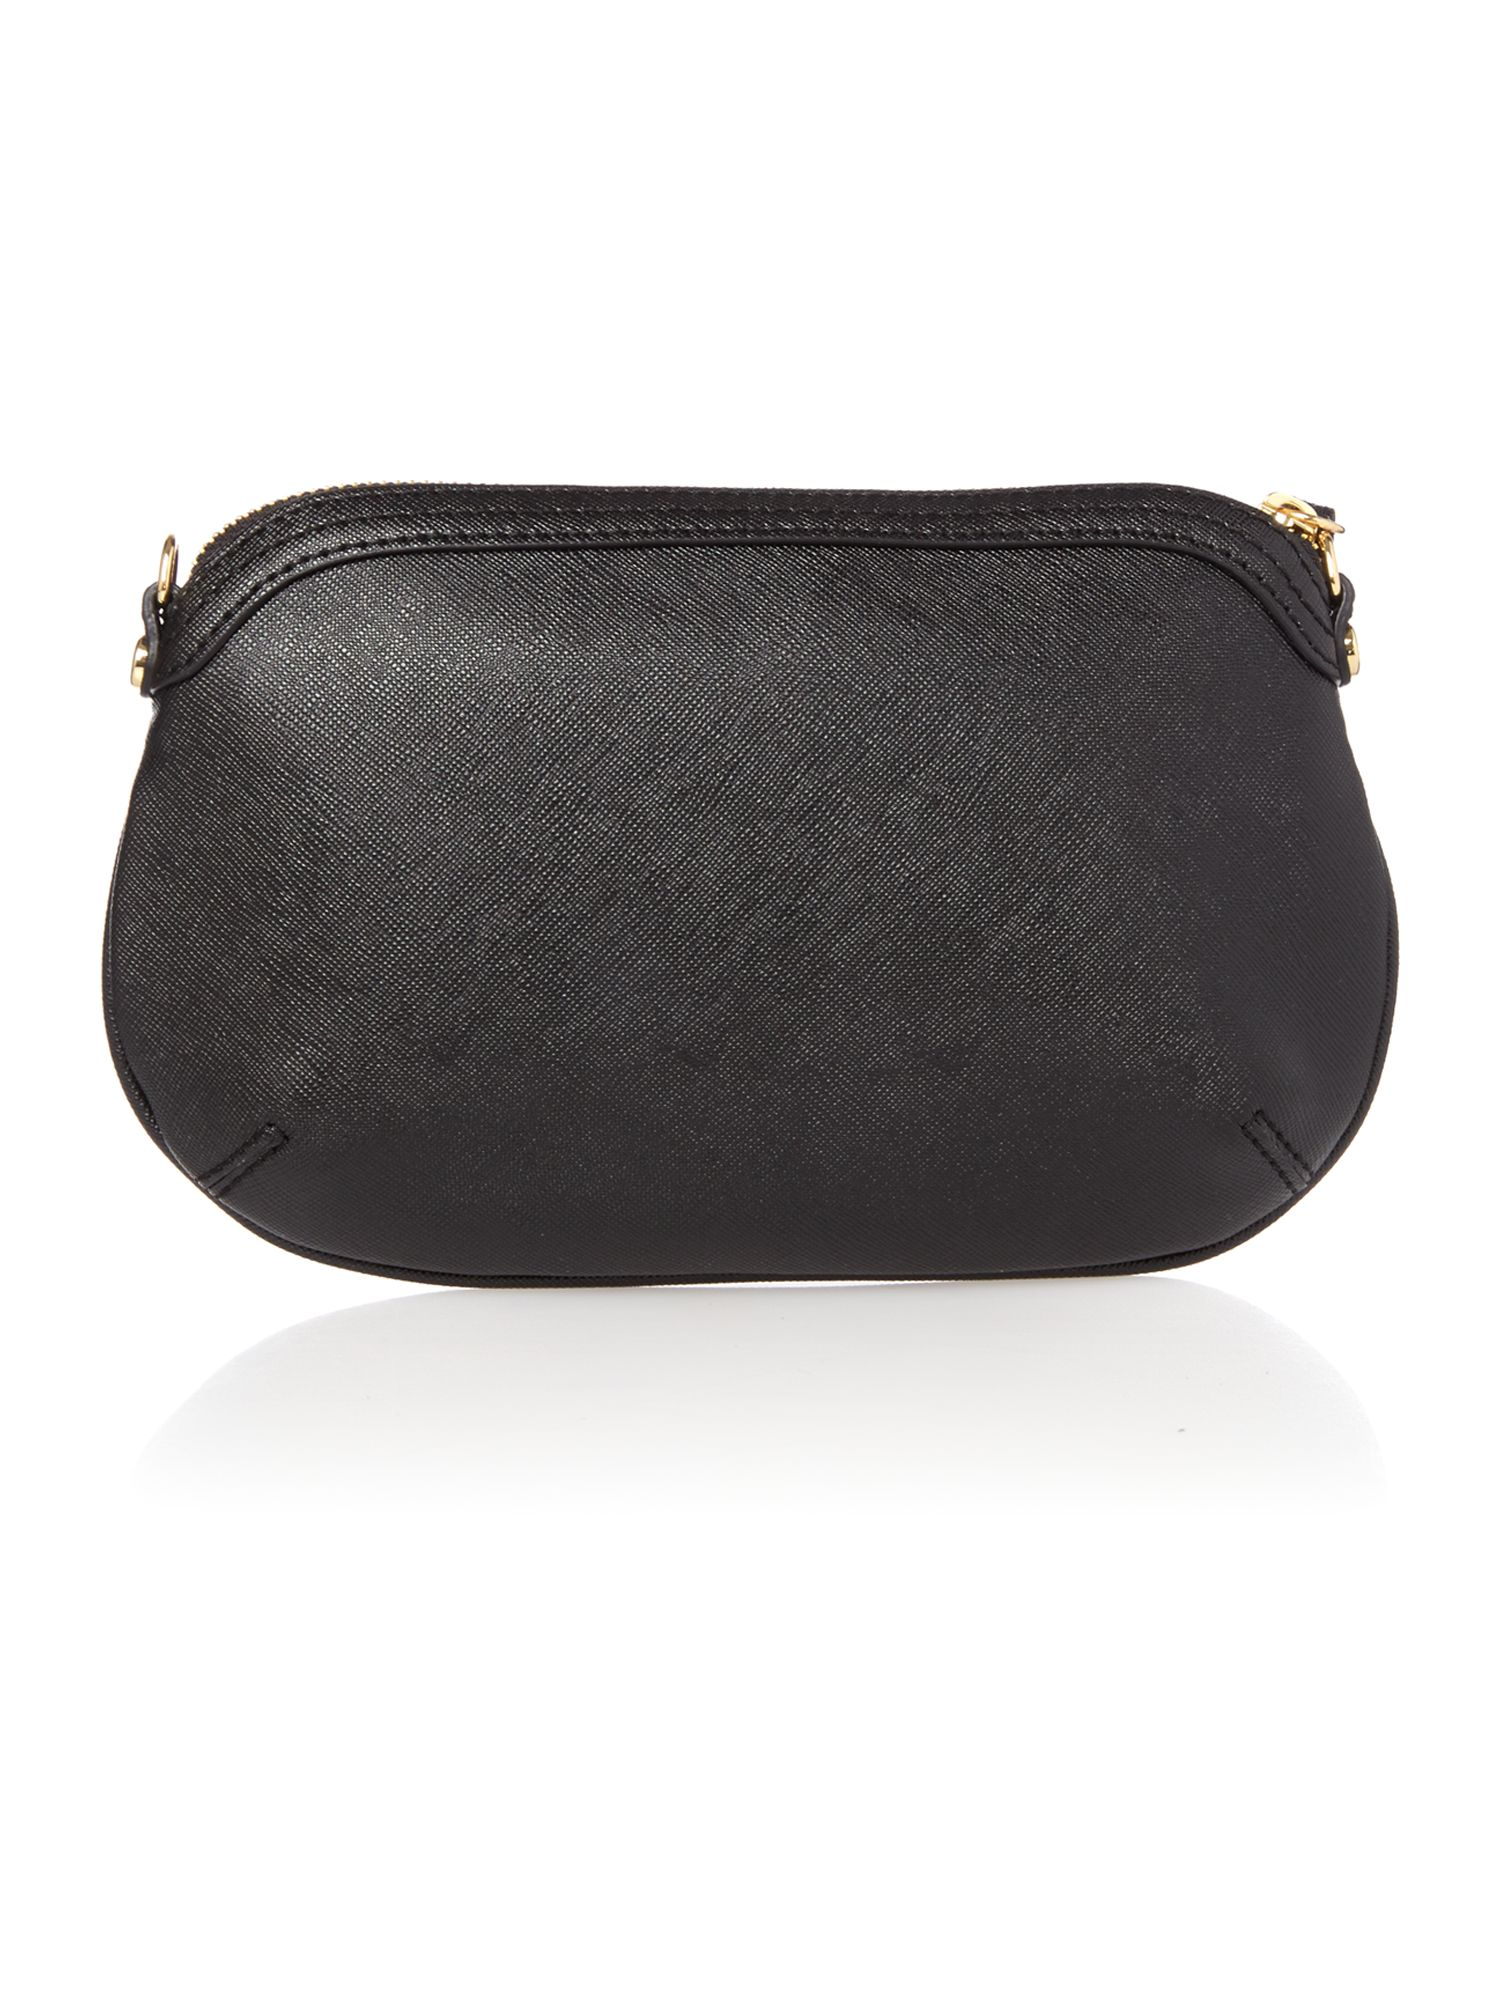 Divina small black zip top cross body bag